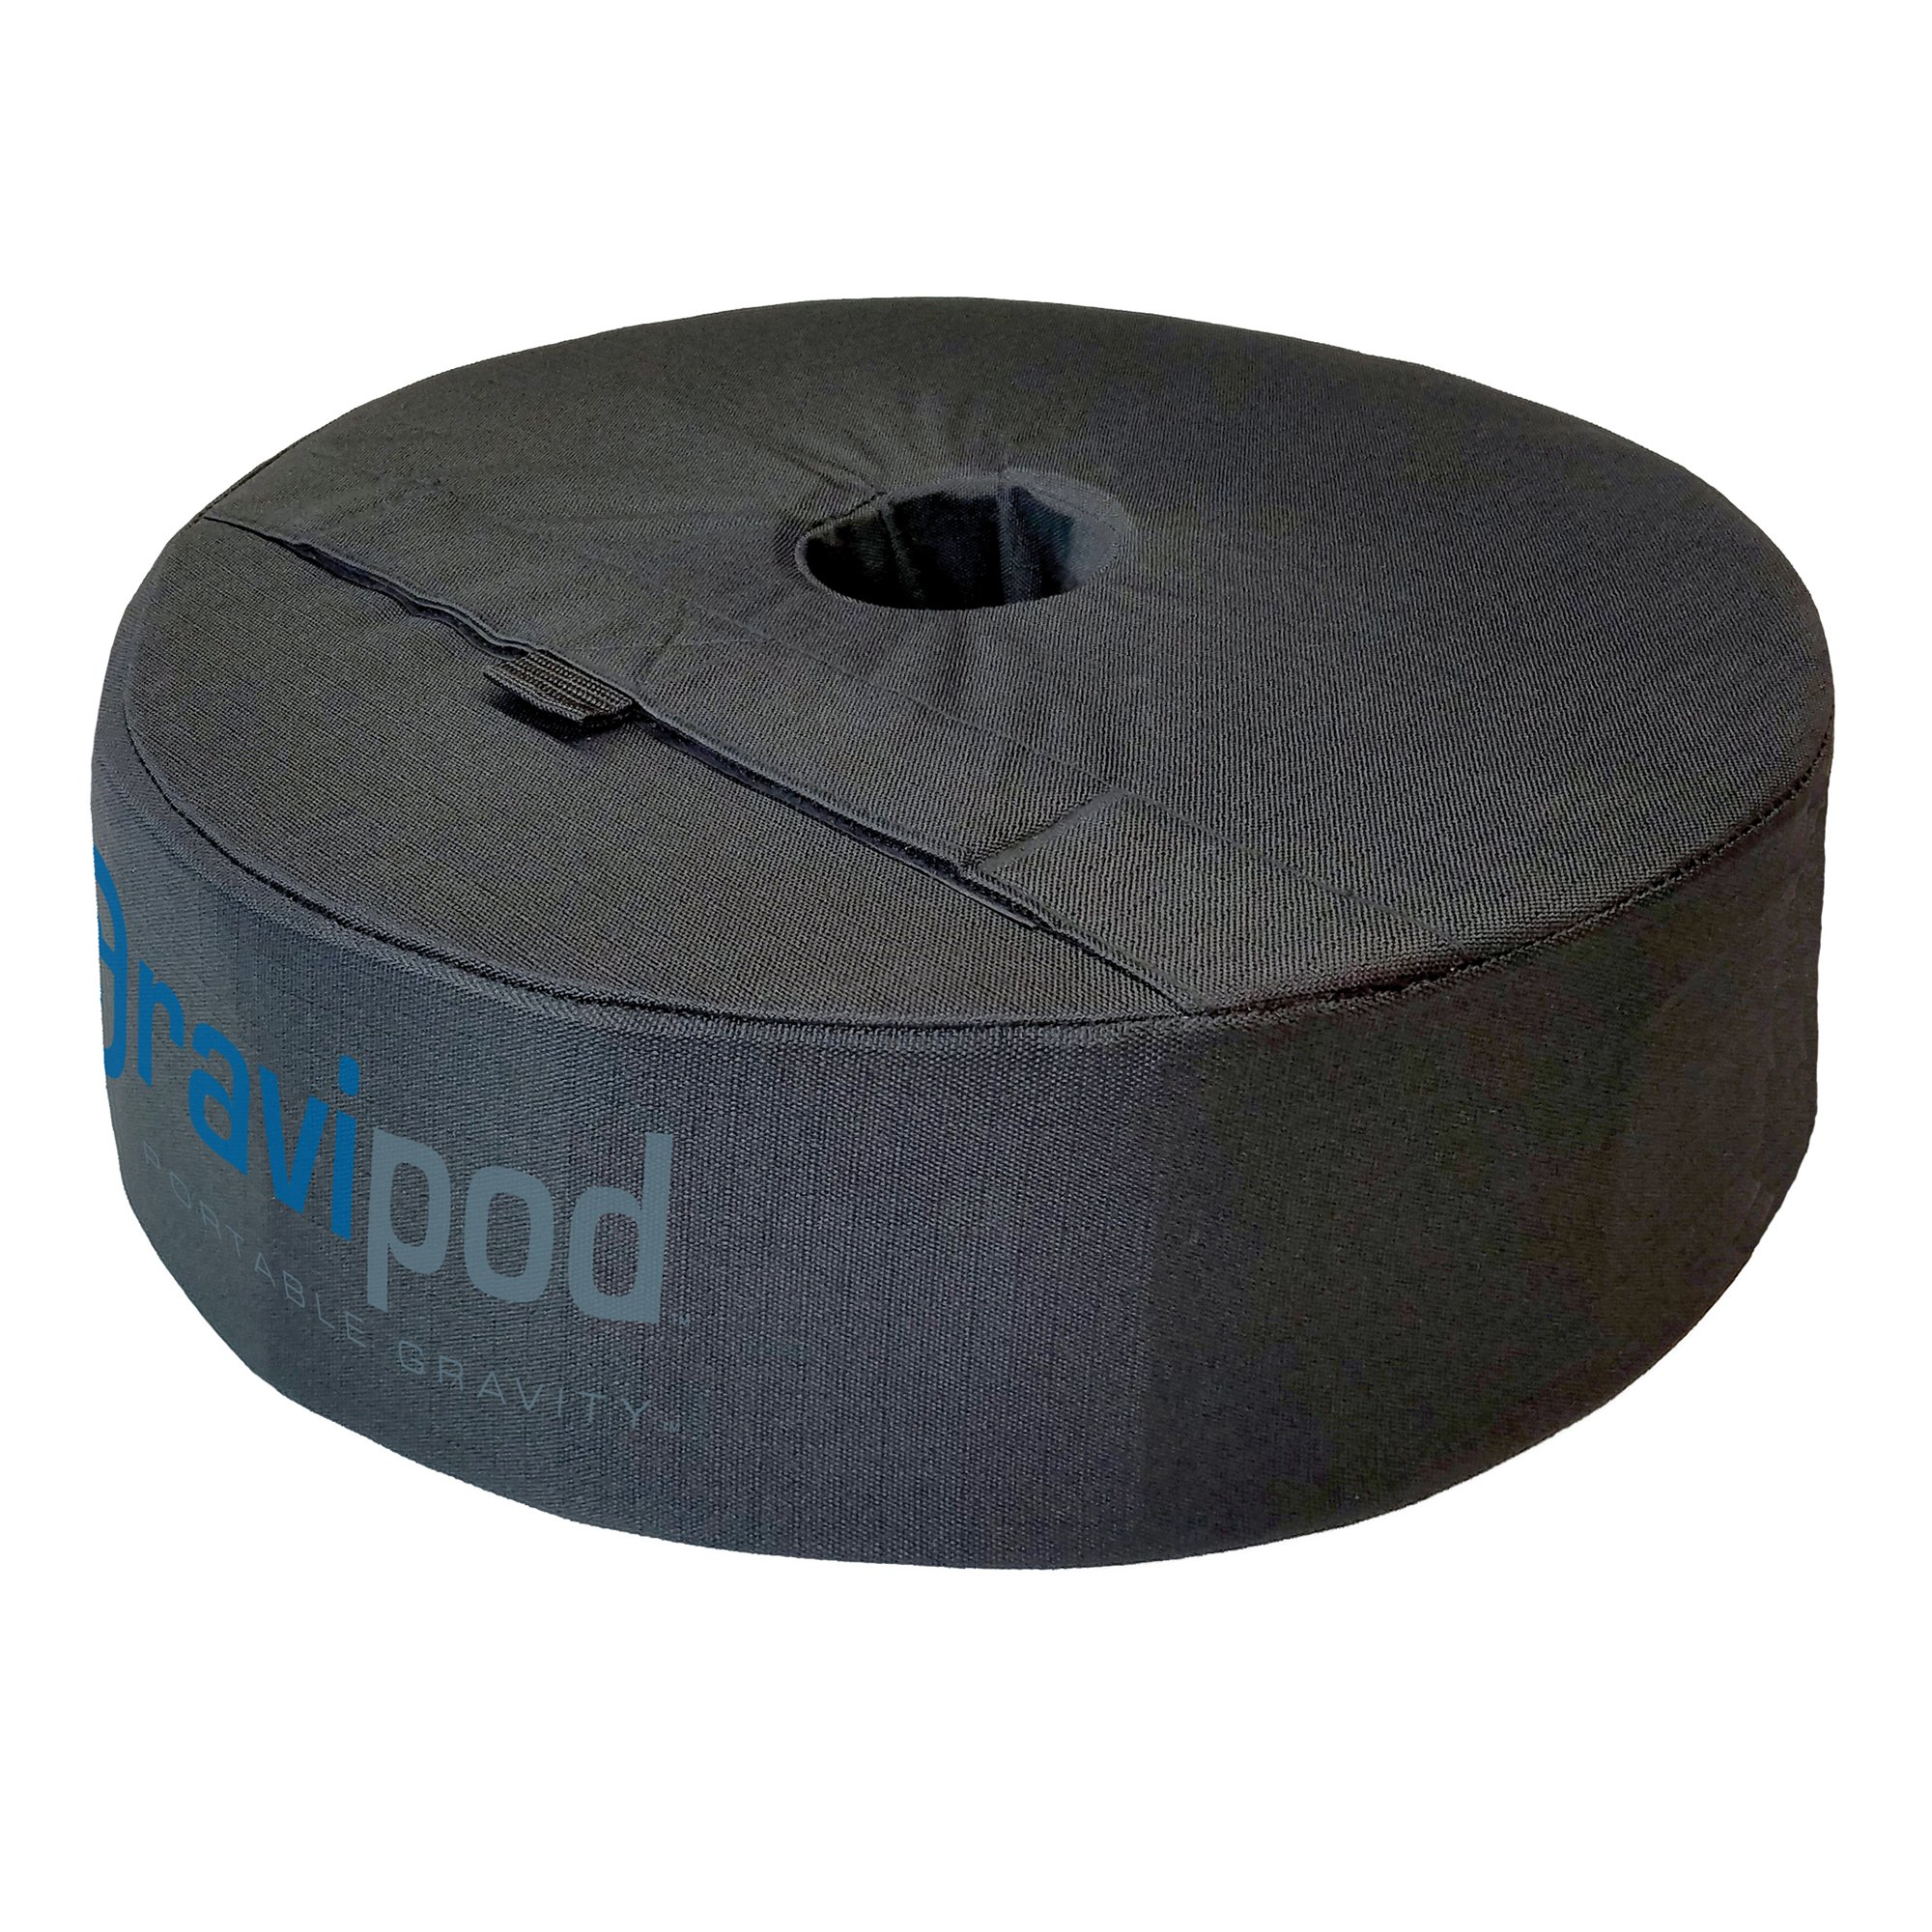 Gravipod 18'' Round Umbrella Base Weight Bag - Up To 85 lbs. by GRAVIPOD